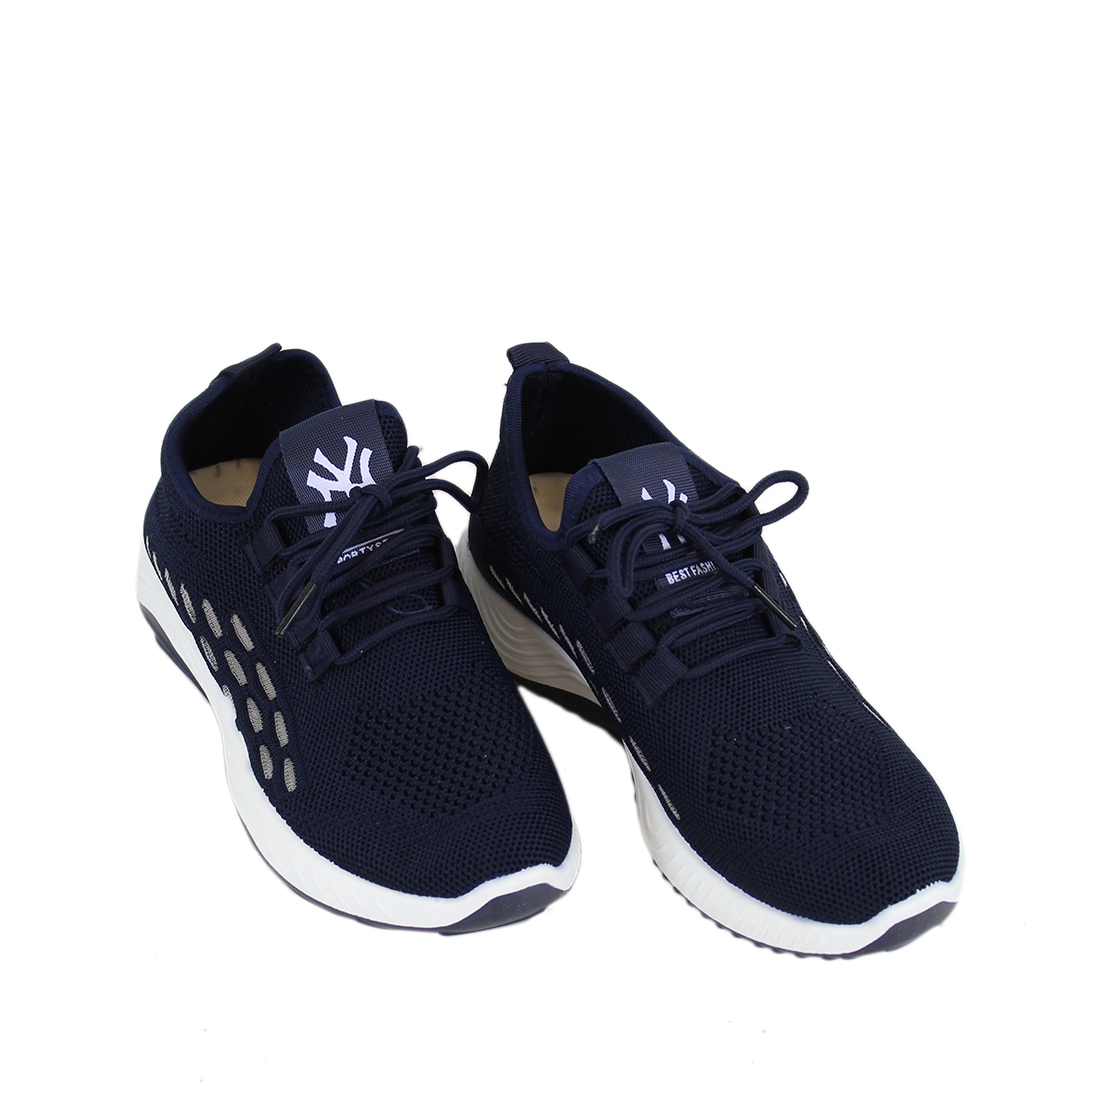 Super light trainers with design on the sides